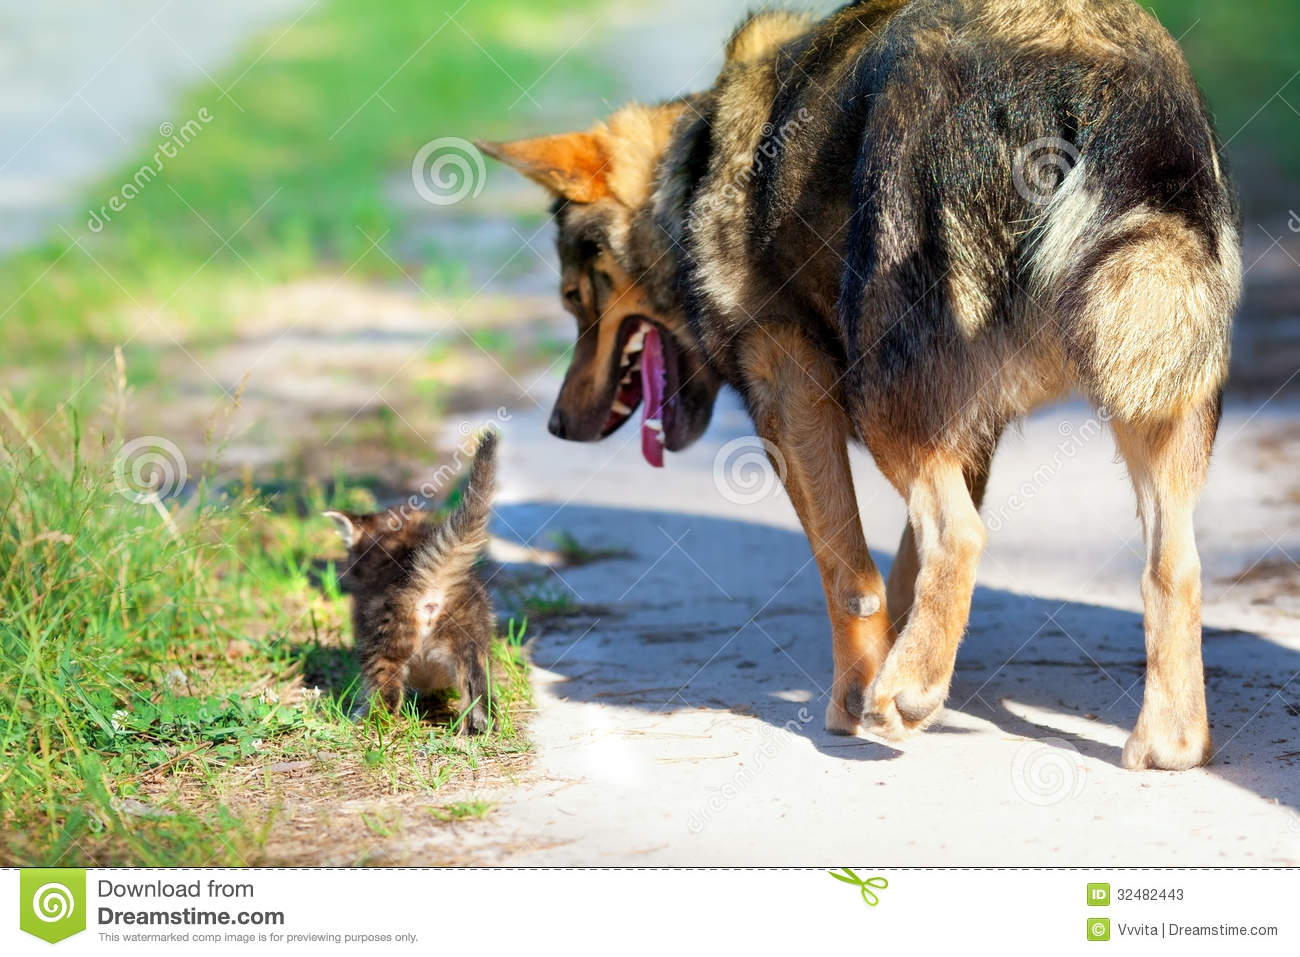 Cute Little Gray Cat For Wallpaper Big Dog And Little Kitten Stock Photos Image 32482443